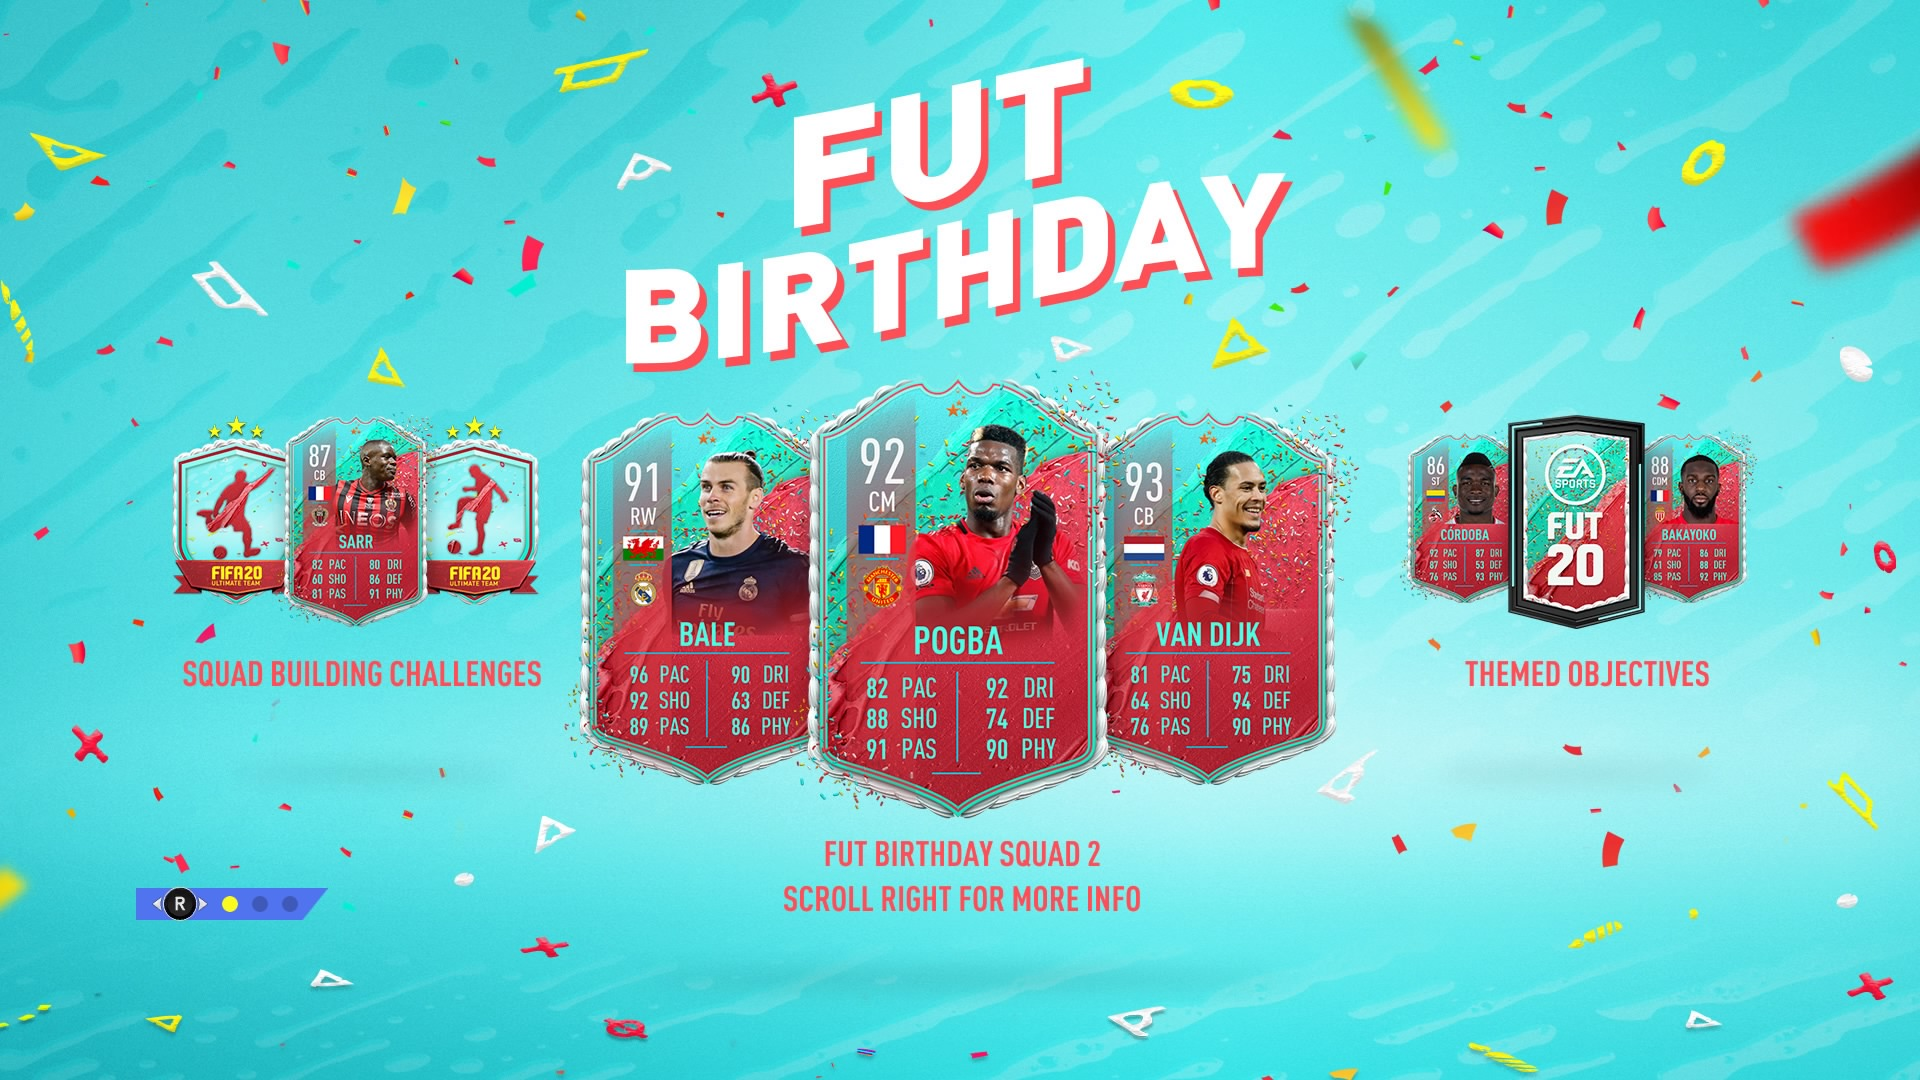 Fabulous Fifa 20 Fut Birthday Guide Upgraded Van Dijk Pogba And Bale Personalised Birthday Cards Paralily Jamesorg